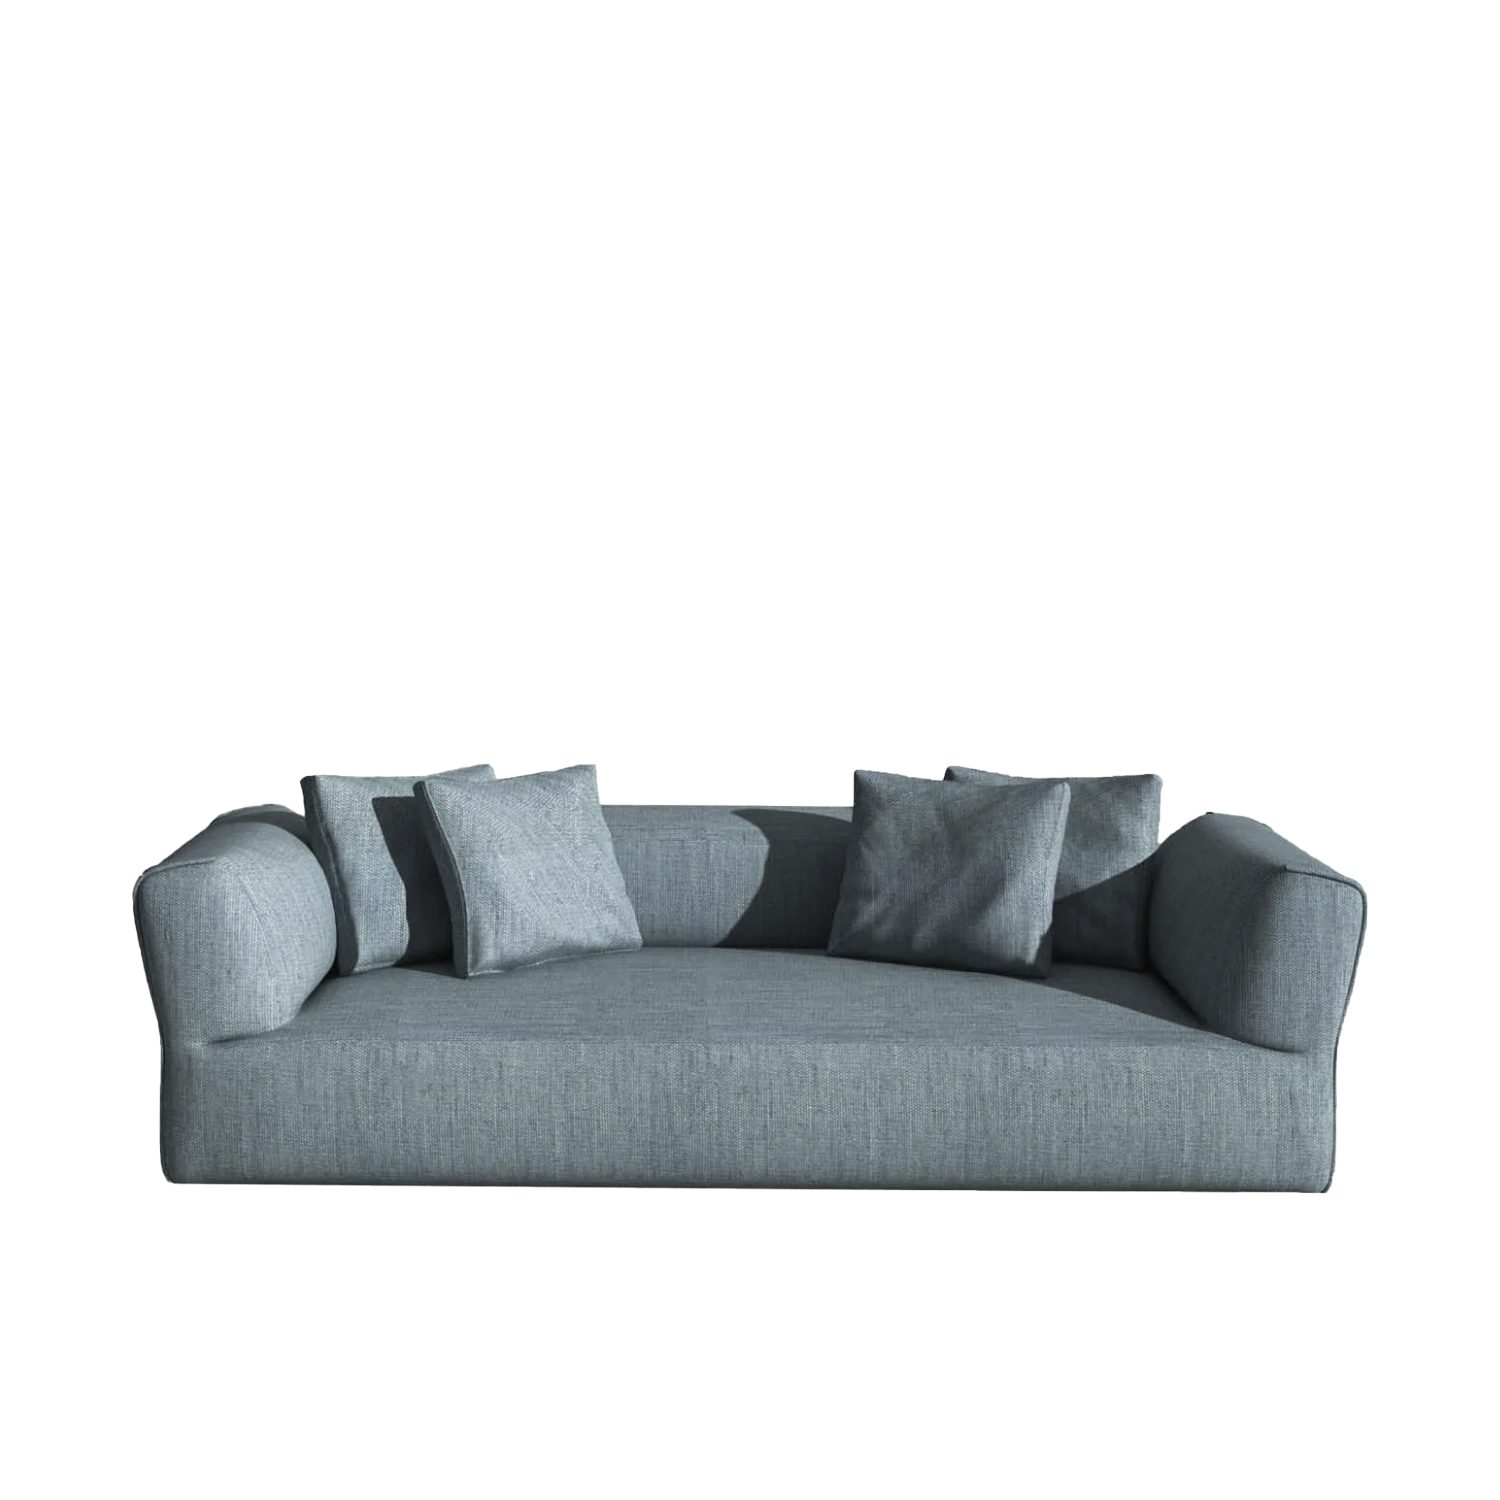 Rever Three Seater Sofa - Rever features plump, generous curves and proportions. The original way the armrests are fitted - a fundamental feature of this sofa – is paired with special attention to detail: the slightly padded edge looks as if it comes from a fashion house because it is inspired by the lapel of jackets and the flap of pockets. Rever is an extremely versatile sofa. The large day beds and the comfortable poufs make it perfect for moments of enjoyable togetherness and play. | Matter of Stuff